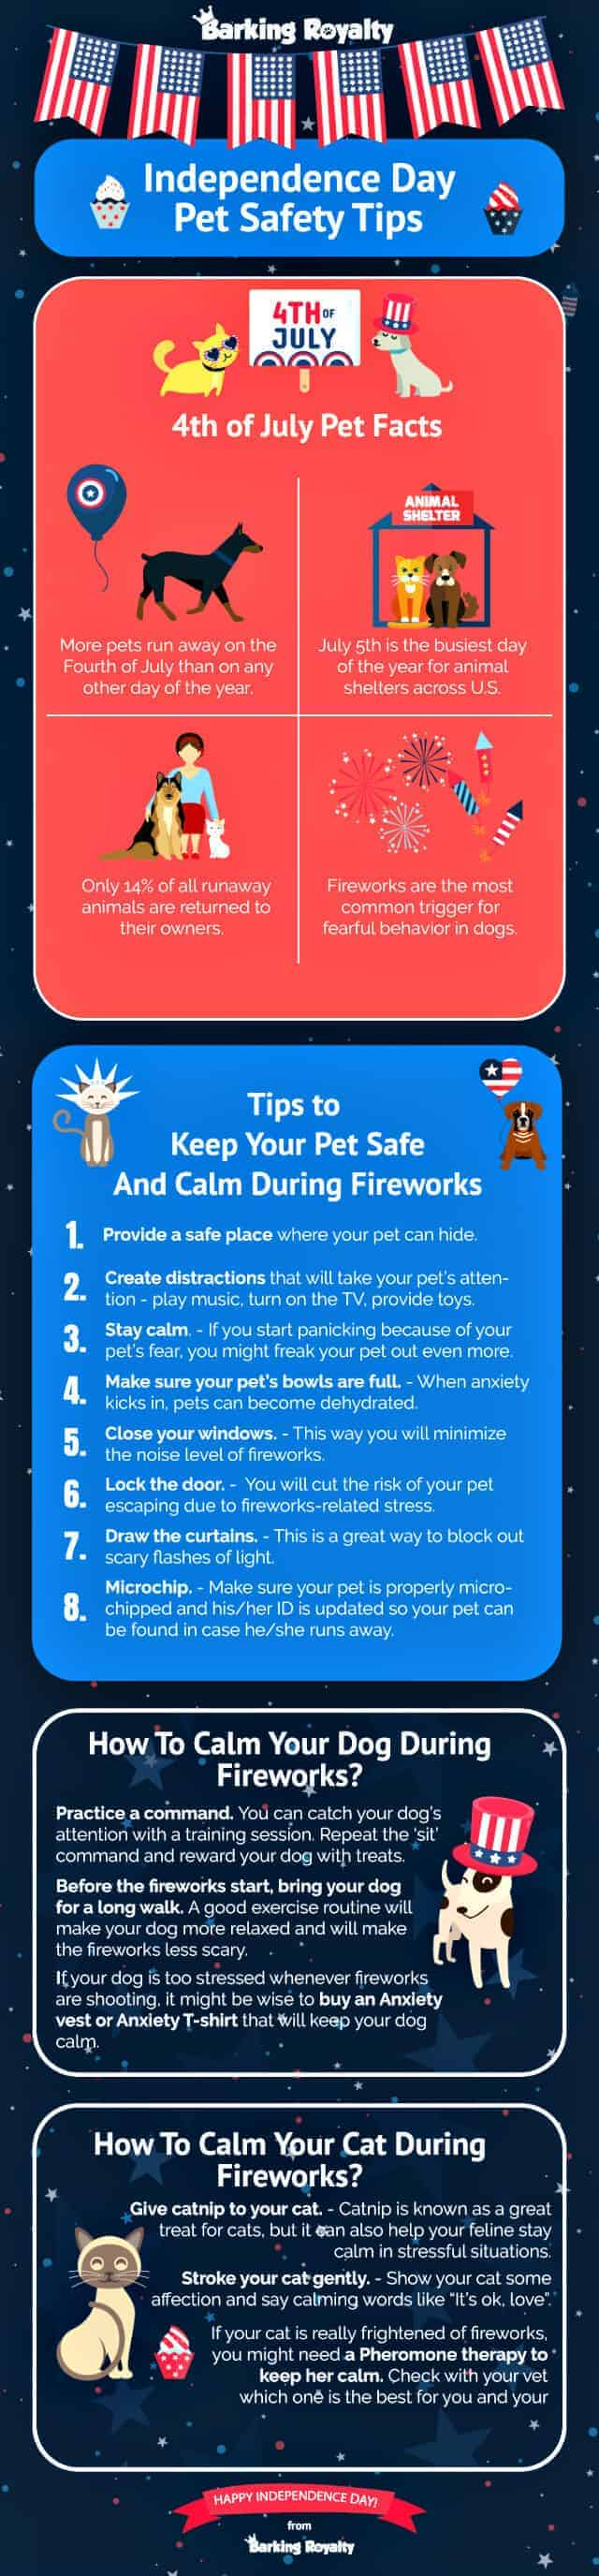 Fireworks danger graphic